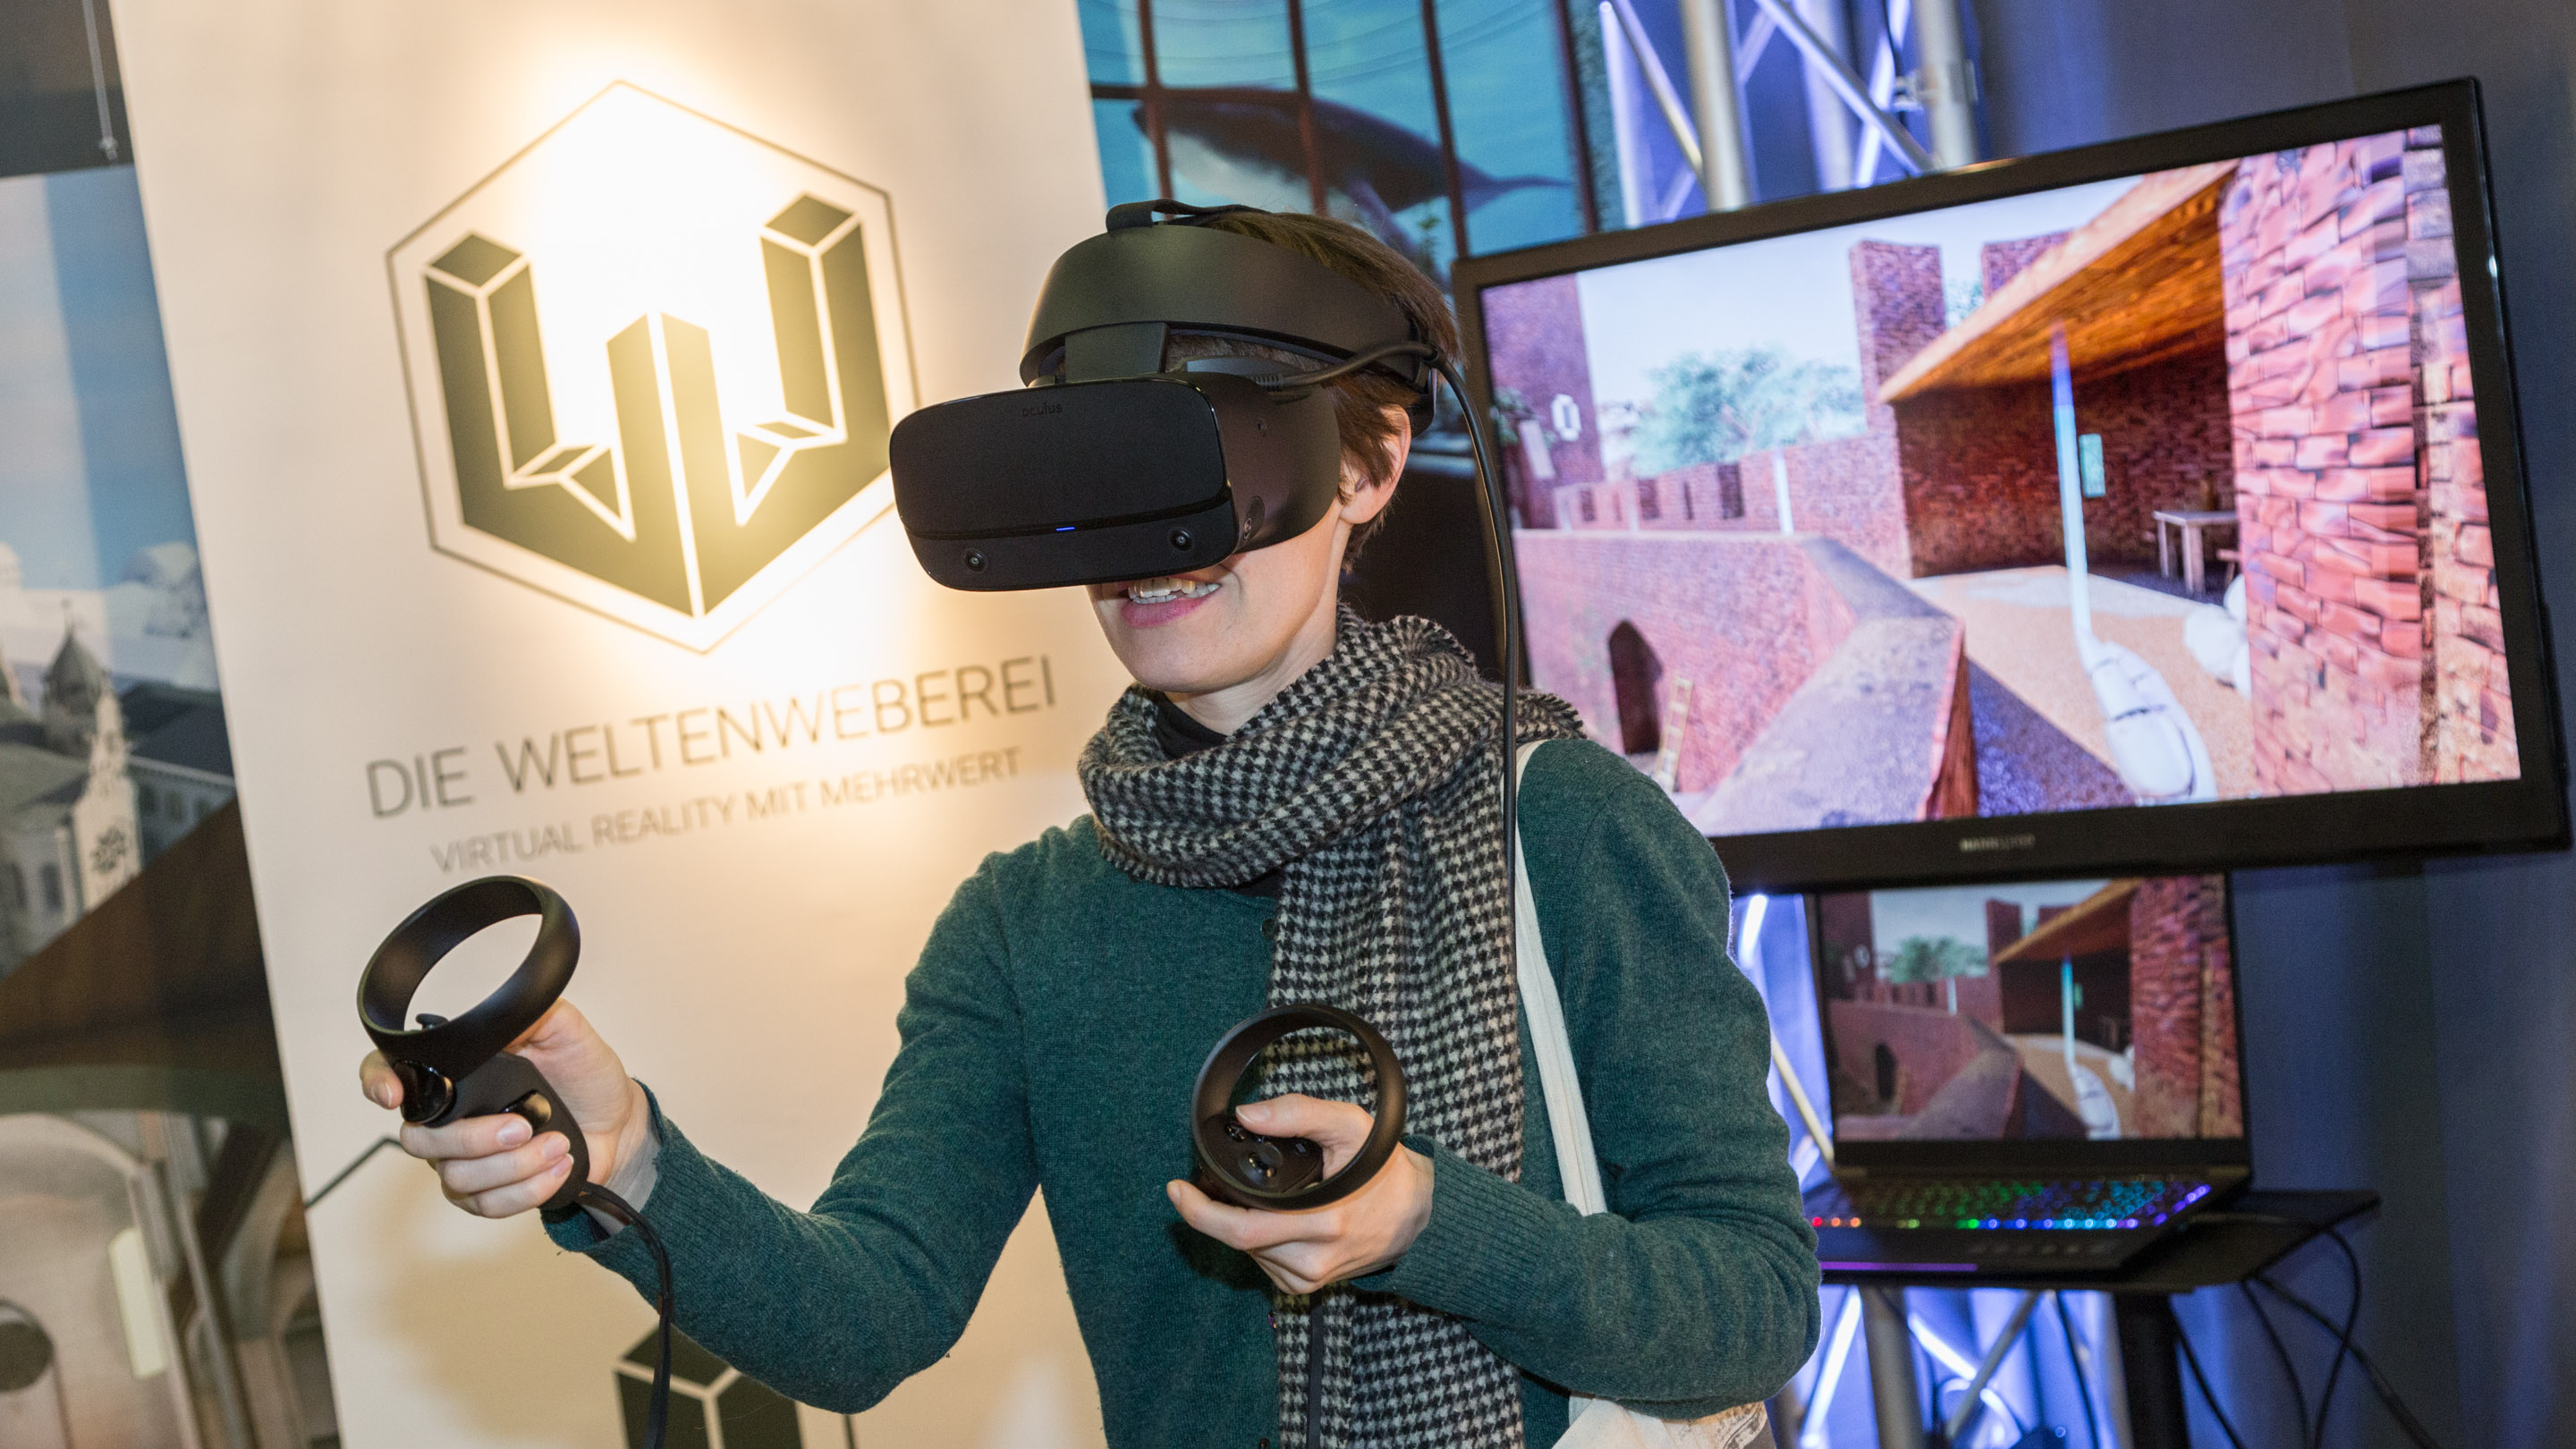 Stand: SPACE INTERACTIVE, Halle 3.2, Exponatec 2019